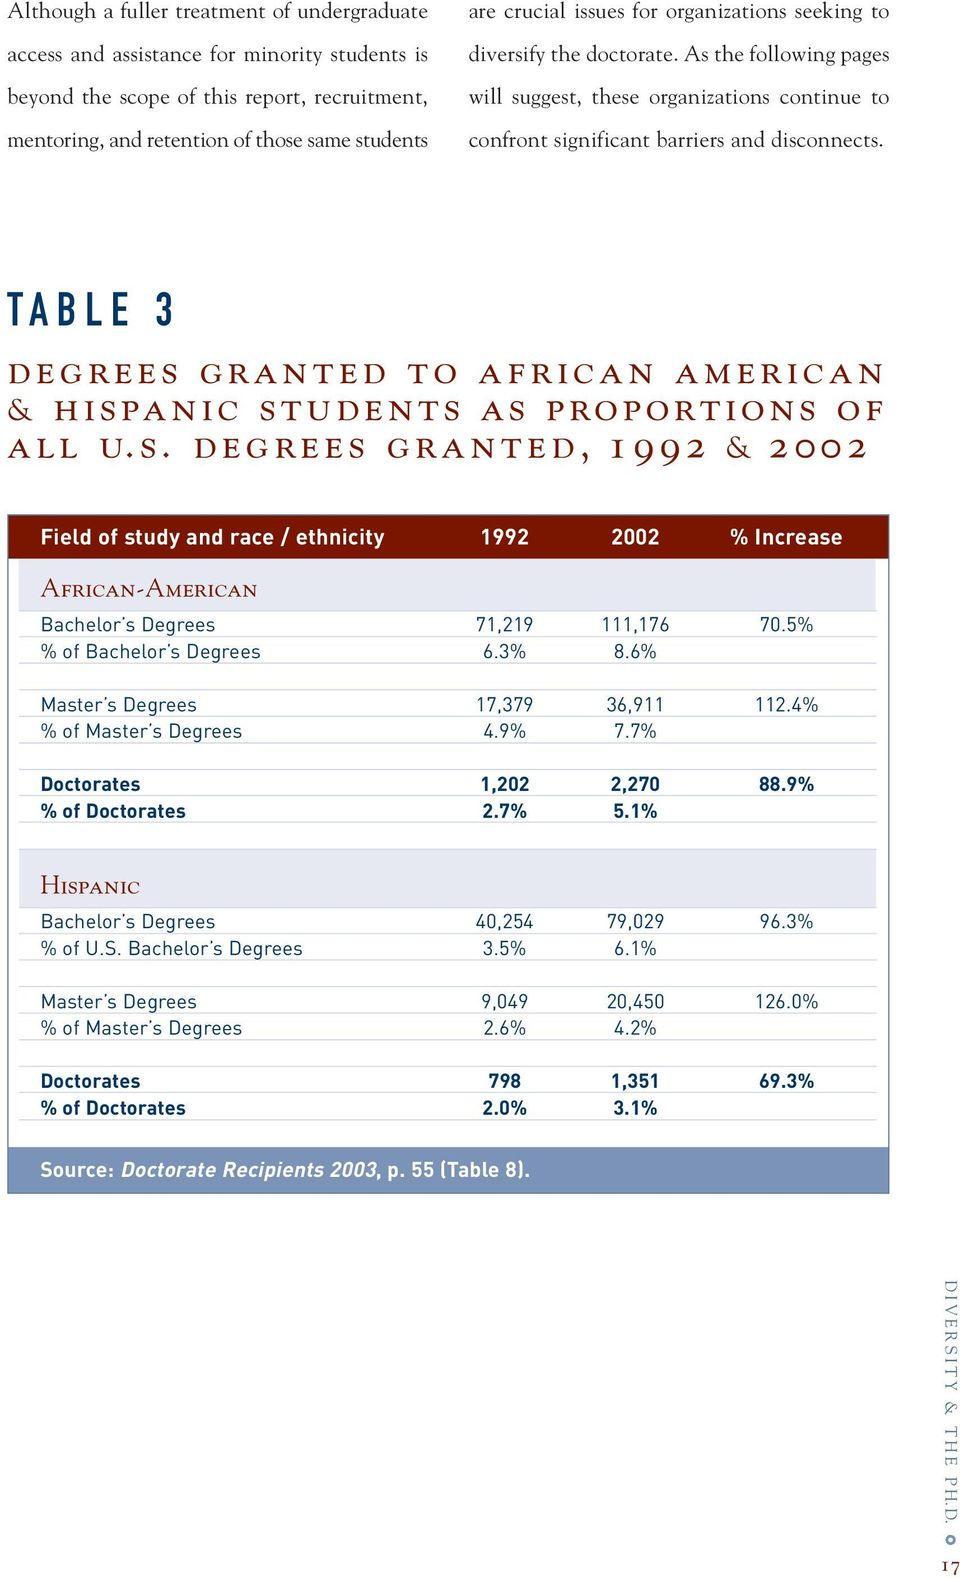 TABLE 3 degrees granted to african american & hispanic students as proportions of all u. s. degrees granted, 1992 & 2002 Field of study and race / ethnicity 1992 2002 % Increase African-American Bachelor s Degrees 71,219 111,176 70.